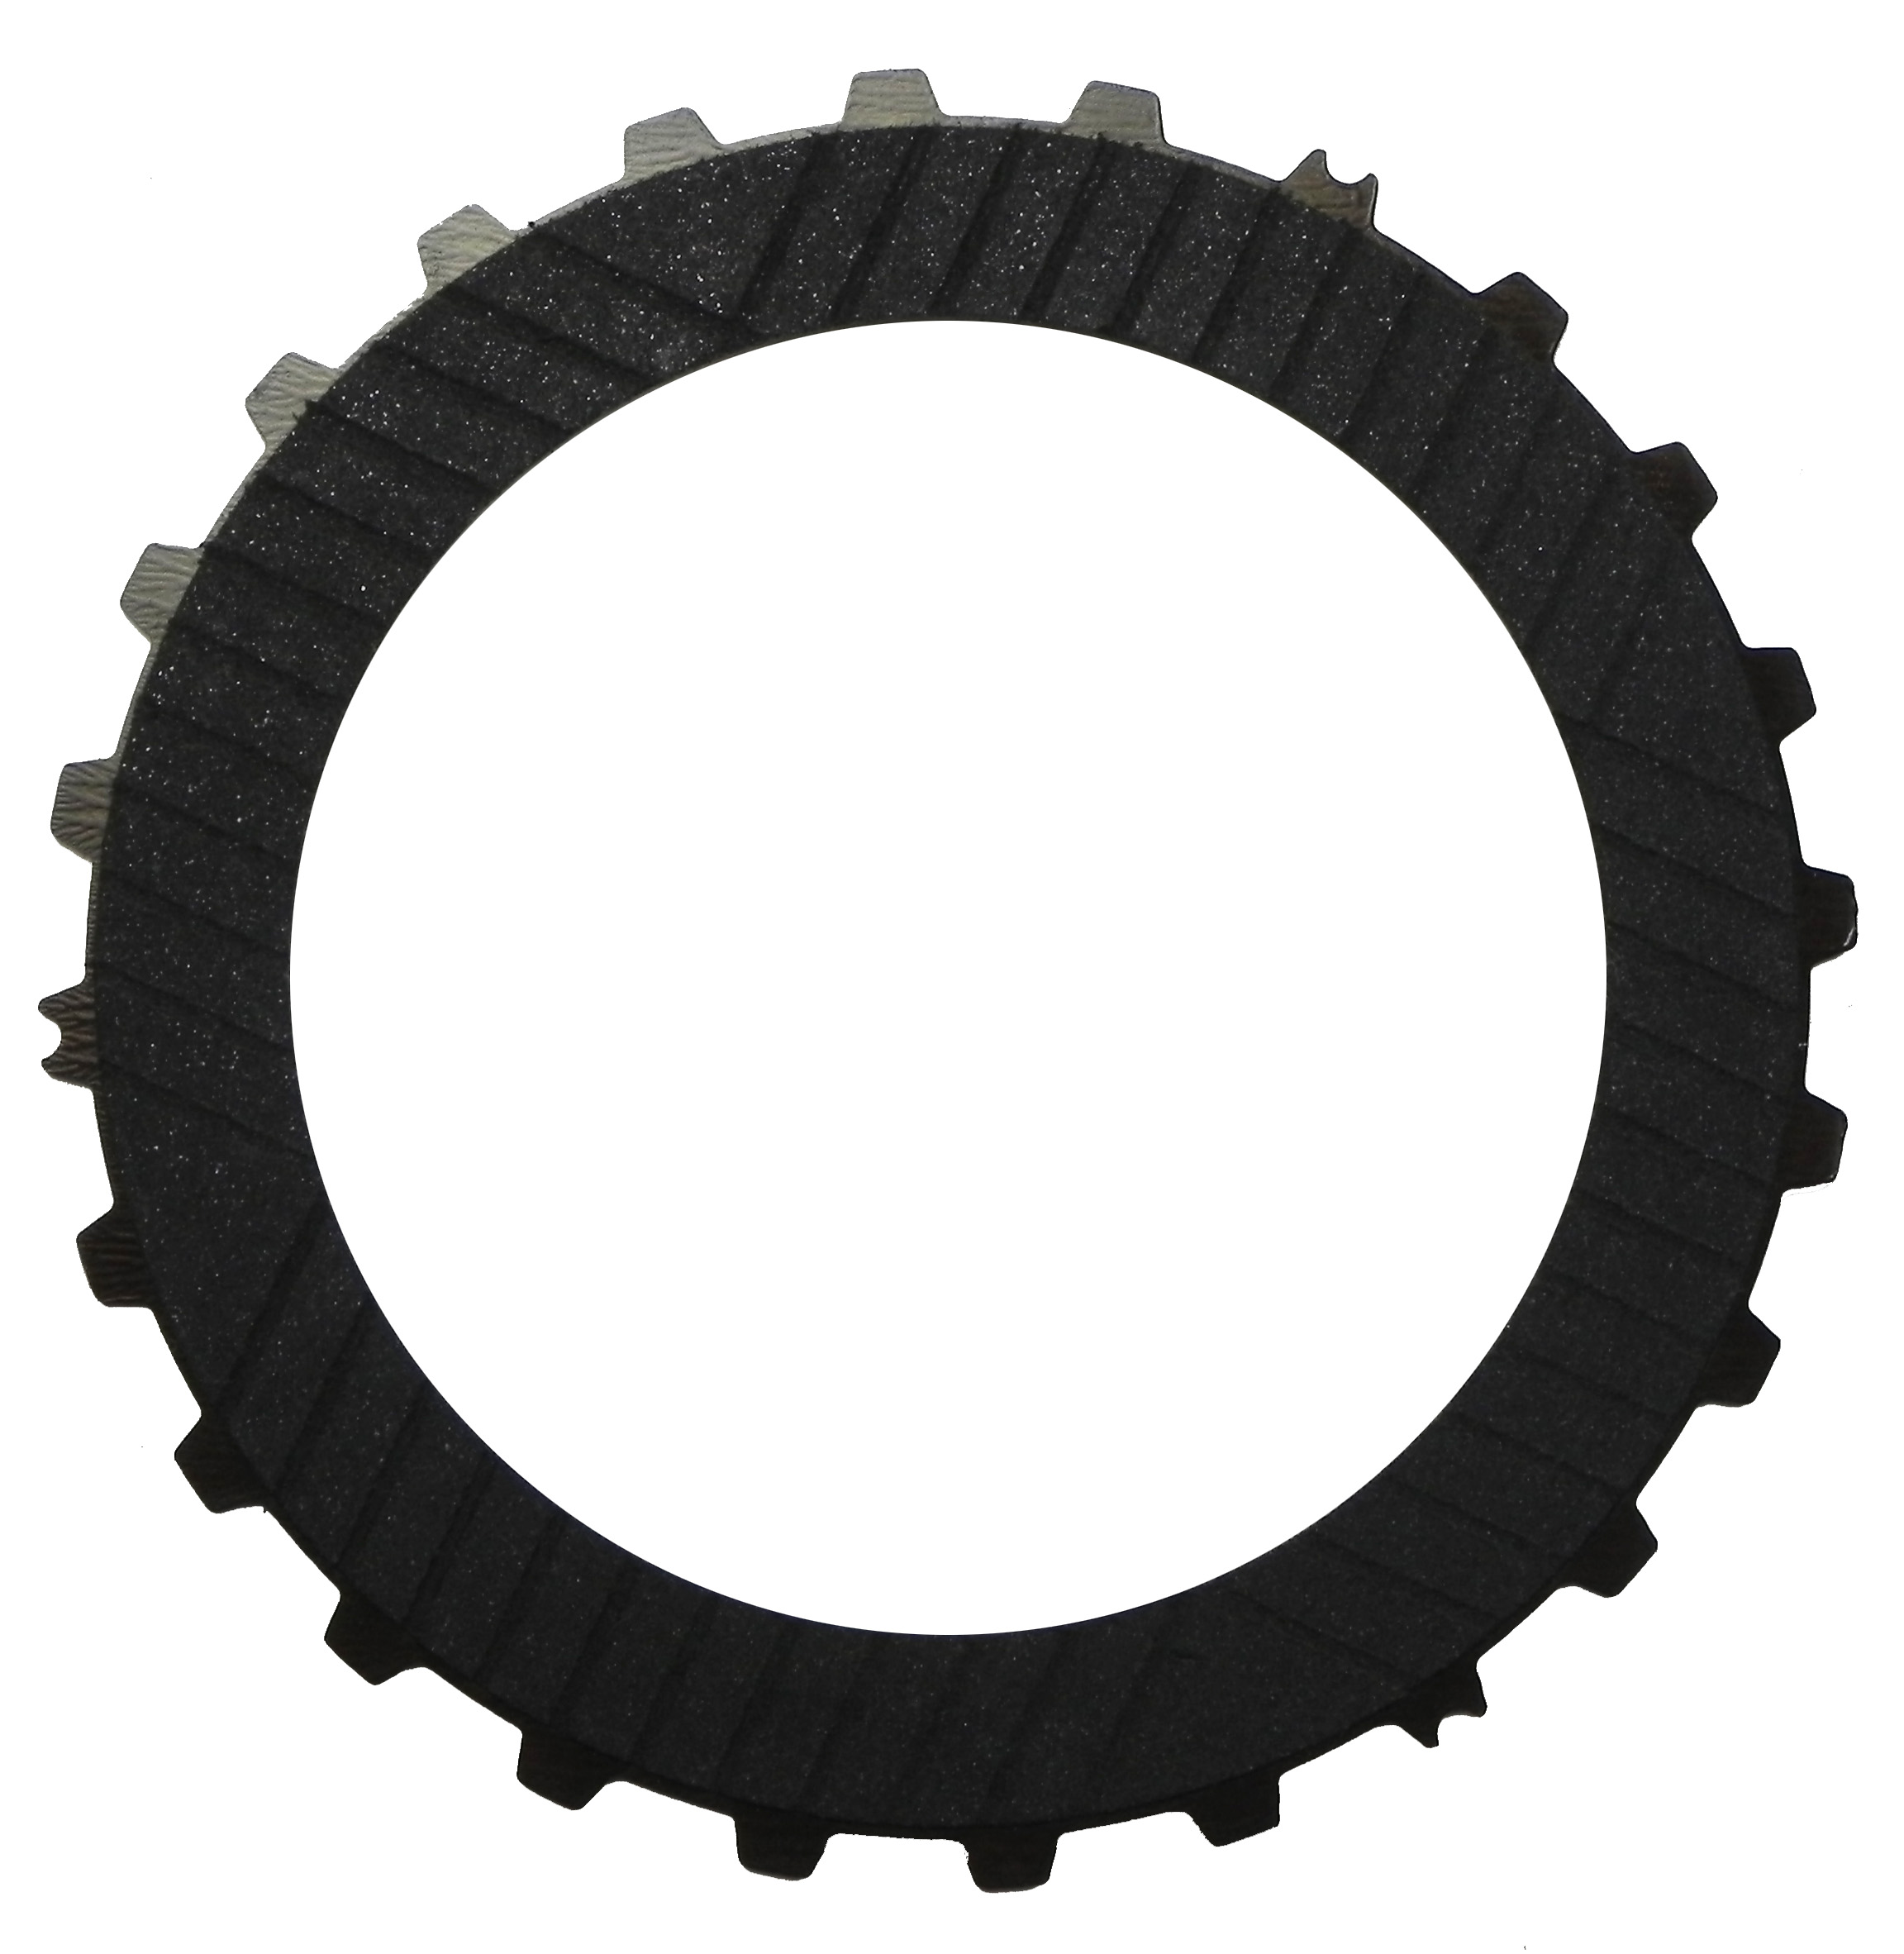 R572635 | 1997-ON Friction Clutch Plate High Energy K3 Clutch Single Sided, OD Spline High Energy